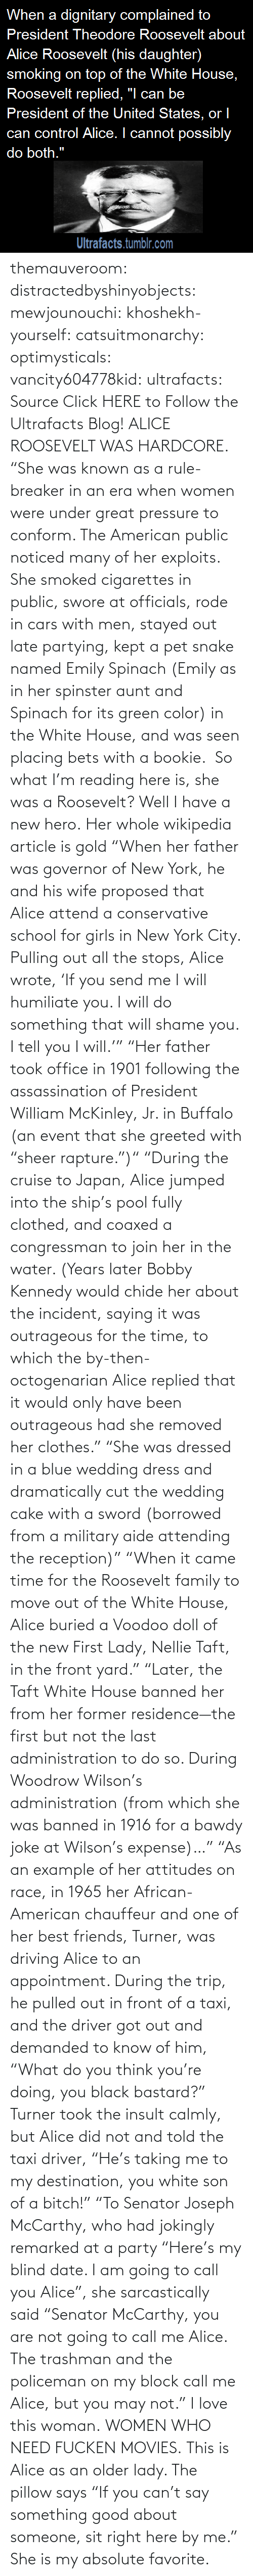 "Inner: themauveroom: distractedbyshinyobjects:  mewjounouchi:  khoshekh-yourself:  catsuitmonarchy:  optimysticals:  vancity604778kid:  ultrafacts:     Source Click HERE to Follow the Ultrafacts Blog!     ALICE ROOSEVELT WAS HARDCORE. ""She was known as a rule-breaker in an era when women were under great pressure to conform. The American public noticed many of her exploits. She smoked cigarettes in public, swore at officials, rode in cars with men, stayed out late partying, kept a pet snake named Emily Spinach (Emily as in her spinster aunt and Spinach for its green color) in the White House, and was seen placing bets with a bookie.    So what I'm reading here is, she was a Roosevelt?  Well I have a new hero.  Her whole wikipedia article is gold ""When her father was governor of New York, he and his wife proposed that Alice attend a conservative school for girls in New York City. Pulling out all the stops, Alice wrote, 'If you send me I will humiliate you. I will do something that will shame you. I tell you I will.'"" ""Her father took office in 1901 following the assassination of President William McKinley, Jr. in Buffalo (an event that she greeted with ""sheer rapture."")"" ""During the cruise to Japan, Alice jumped into the ship's pool fully clothed, and coaxed a congressman to join her in the water. (Years later Bobby Kennedy would chide her about the incident, saying it was outrageous for the time, to which the by-then-octogenarian Alice replied that it would only have been outrageous had she removed her clothes."" ""She was dressed in a blue wedding dress and dramatically cut the wedding cake with a sword (borrowed from a military aide attending the reception)"" ""When it came time for the Roosevelt family to move out of the White House, Alice buried a Voodoo doll of the new First Lady, Nellie Taft, in the front yard."" ""Later, the Taft White House banned her from her former residence—the first but not the last administration to do so. During Woodrow Wilson's administration (from which she was banned in 1916 for a bawdy joke at Wilson's expense)…"" ""As an example of her attitudes on race, in 1965 her African-American chauffeur and one of her best friends, Turner, was driving Alice to an appointment. During the trip, he pulled out in front of a taxi, and the driver got out and demanded to know of him, ""What do you think you're doing, you black bastard?"" Turner took the insult calmly, but Alice did not and told the taxi driver, ""He's taking me to my destination, you white son of a bitch!"" ""To Senator Joseph McCarthy, who had jokingly remarked at a party ""Here's my blind date. I am going to call you Alice"", she sarcastically said ""Senator McCarthy, you are not going to call me Alice. The trashman and the policeman on my block call me Alice, but you may not.""  I love this woman.  WOMEN WHO NEED FUCKEN MOVIES.   This is Alice as an older lady. The pillow says ""If you can't say something good about someone, sit right here by me.""  She is my absolute favorite."